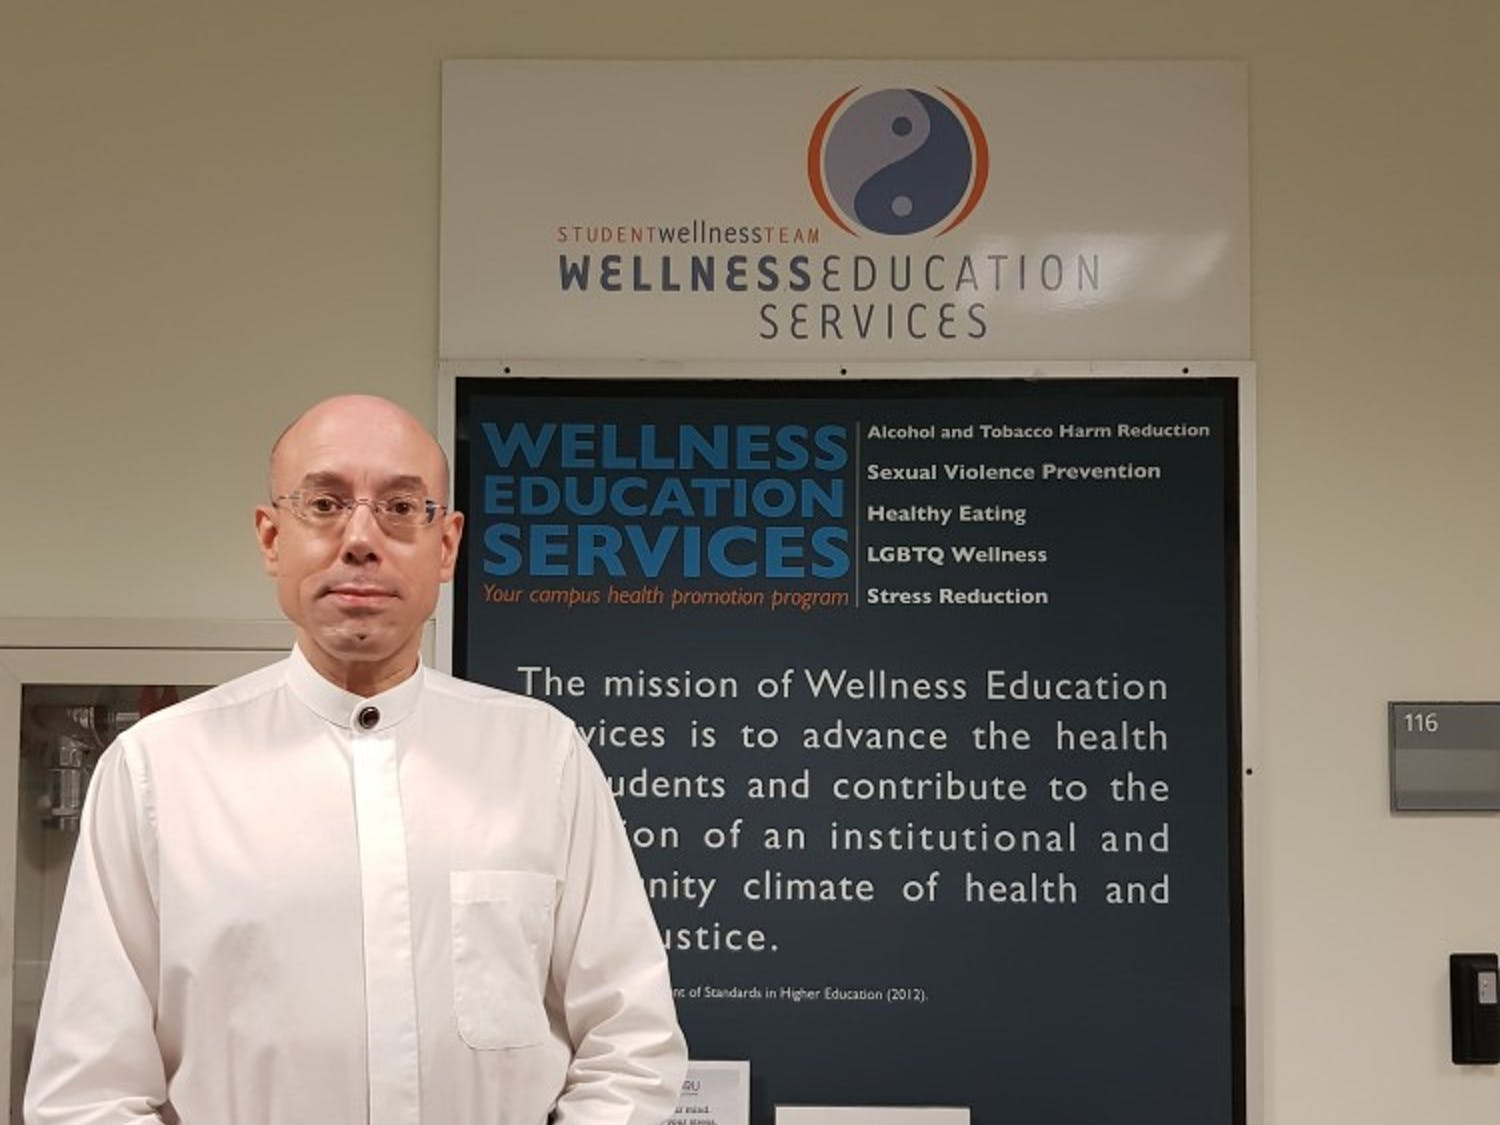 Johannes Nitsche, a SUNY distinguished professor in the chemical and biological engineering department, said his department is the source of violence prevention and safety workshops hosted by Health Promotion in September.